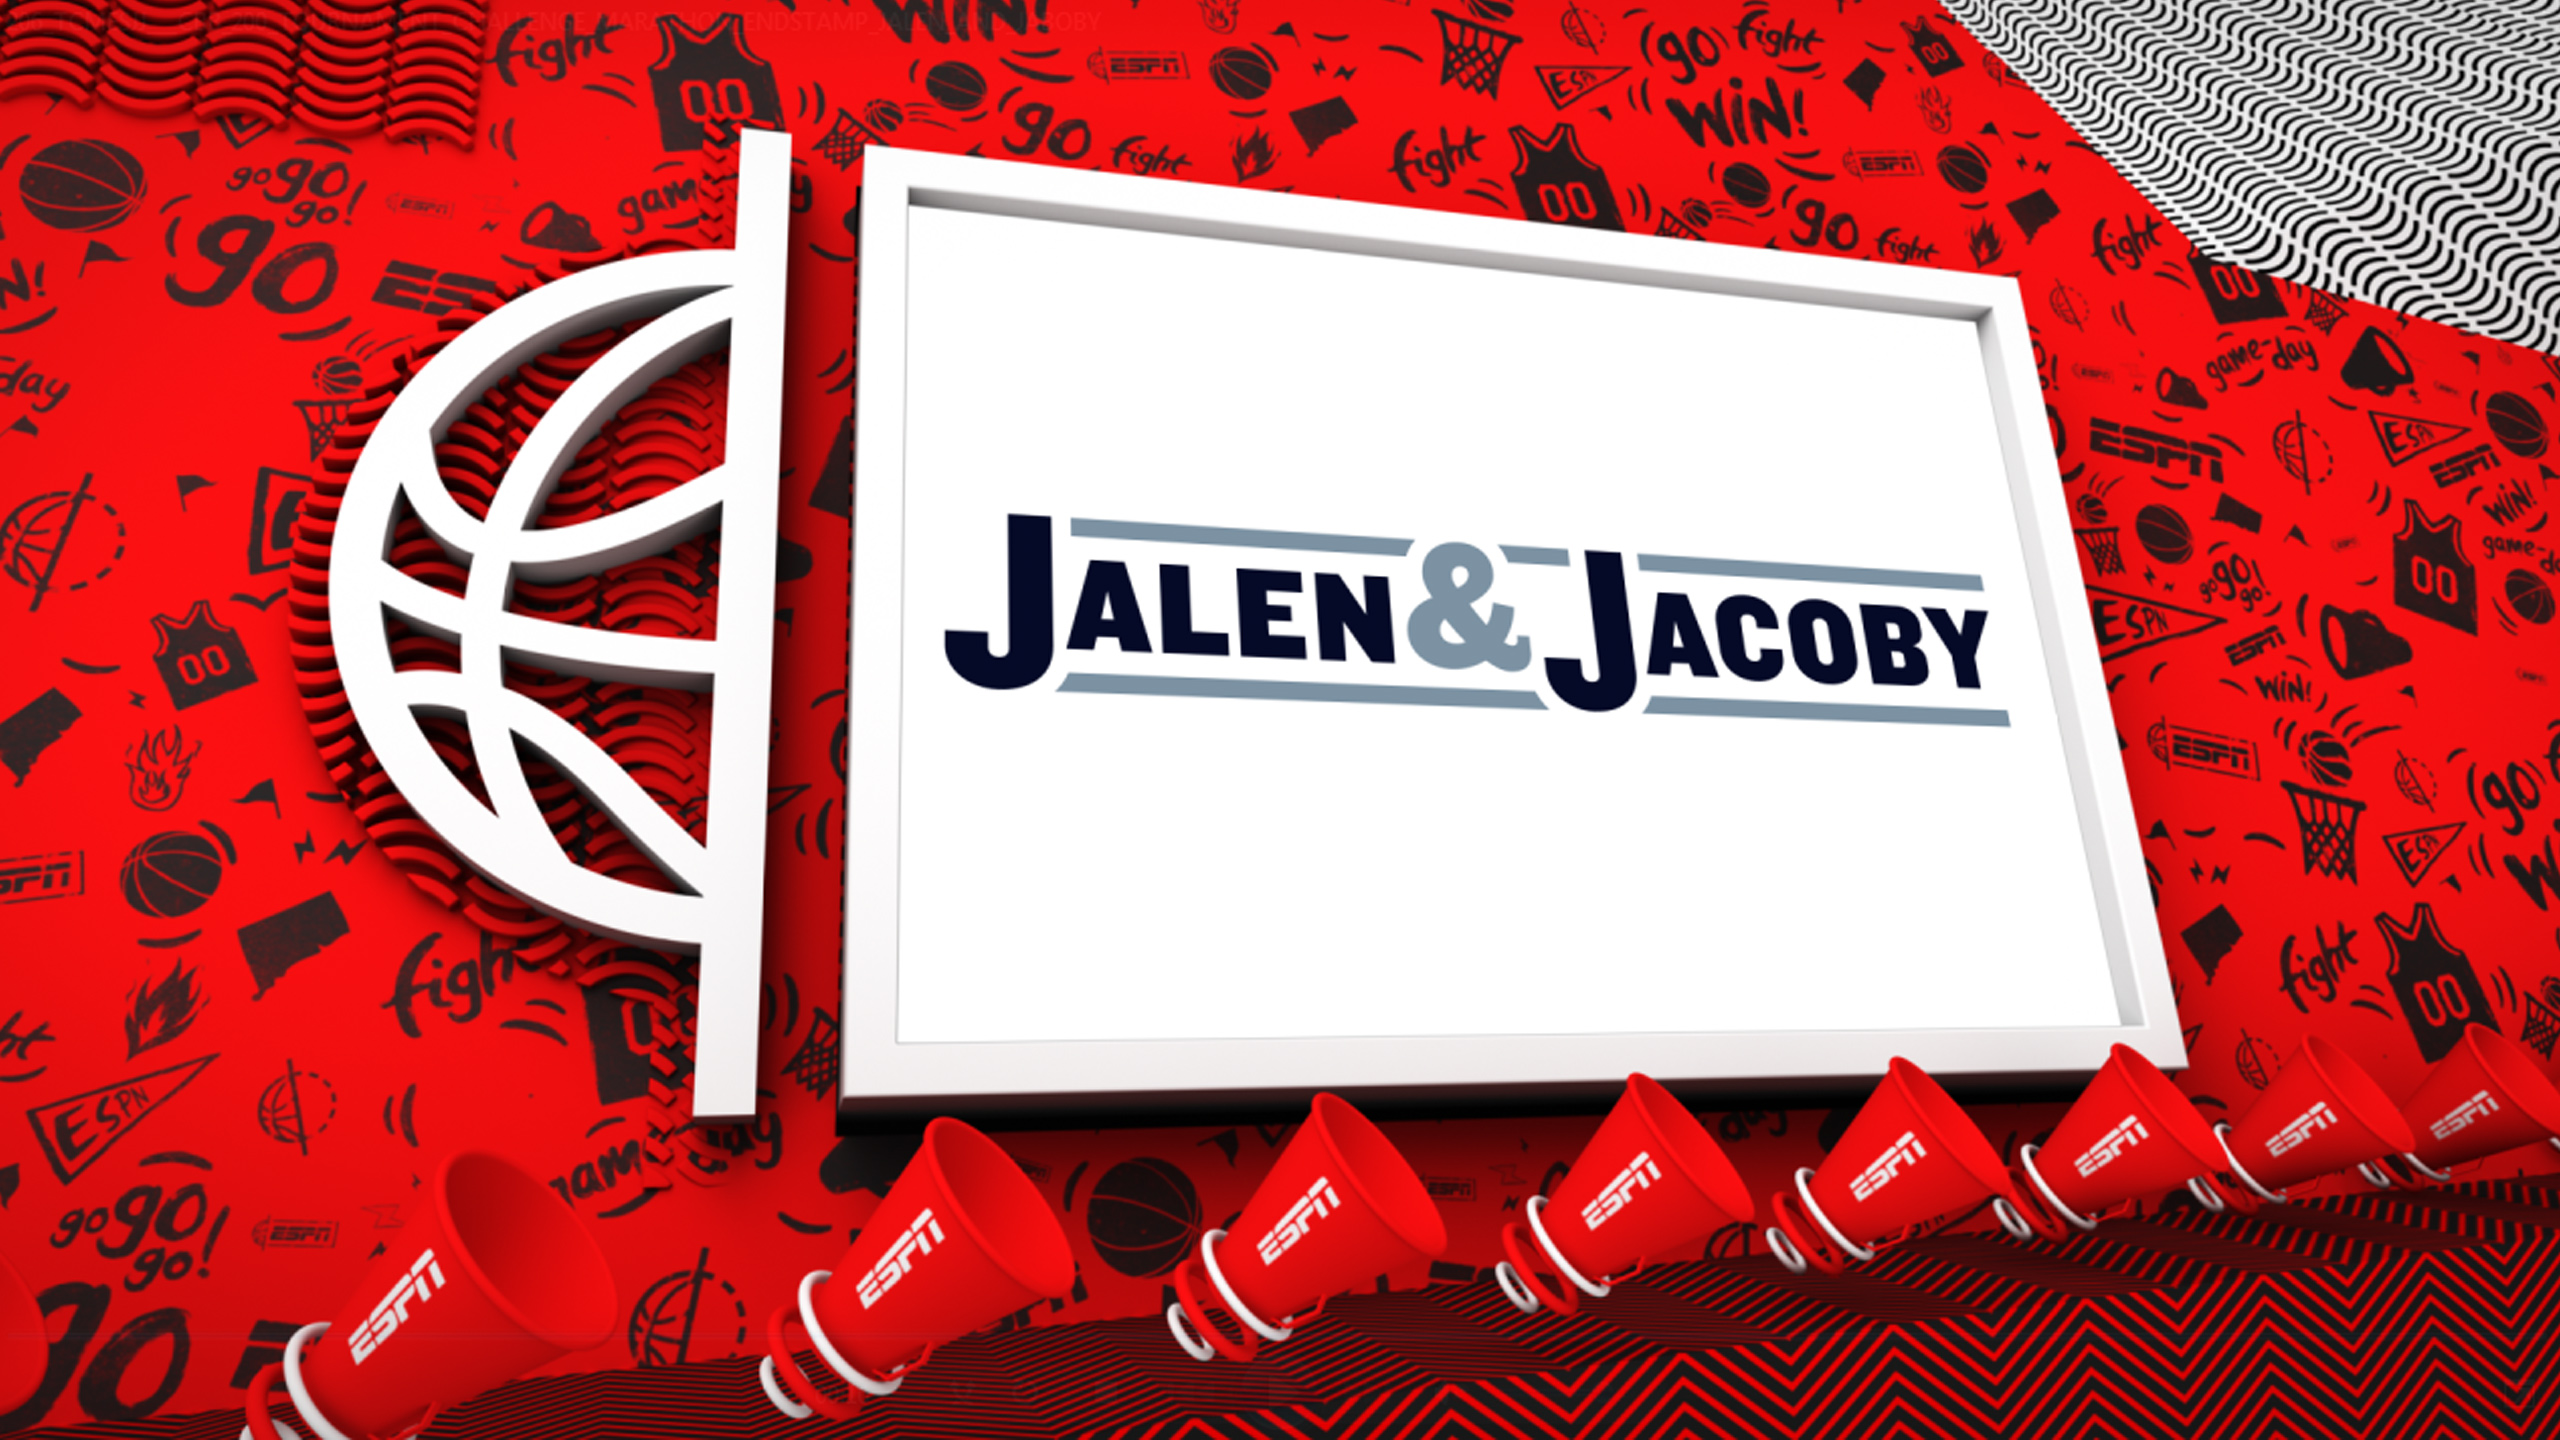 Tue, 3/19 - Jalen & Jacoby